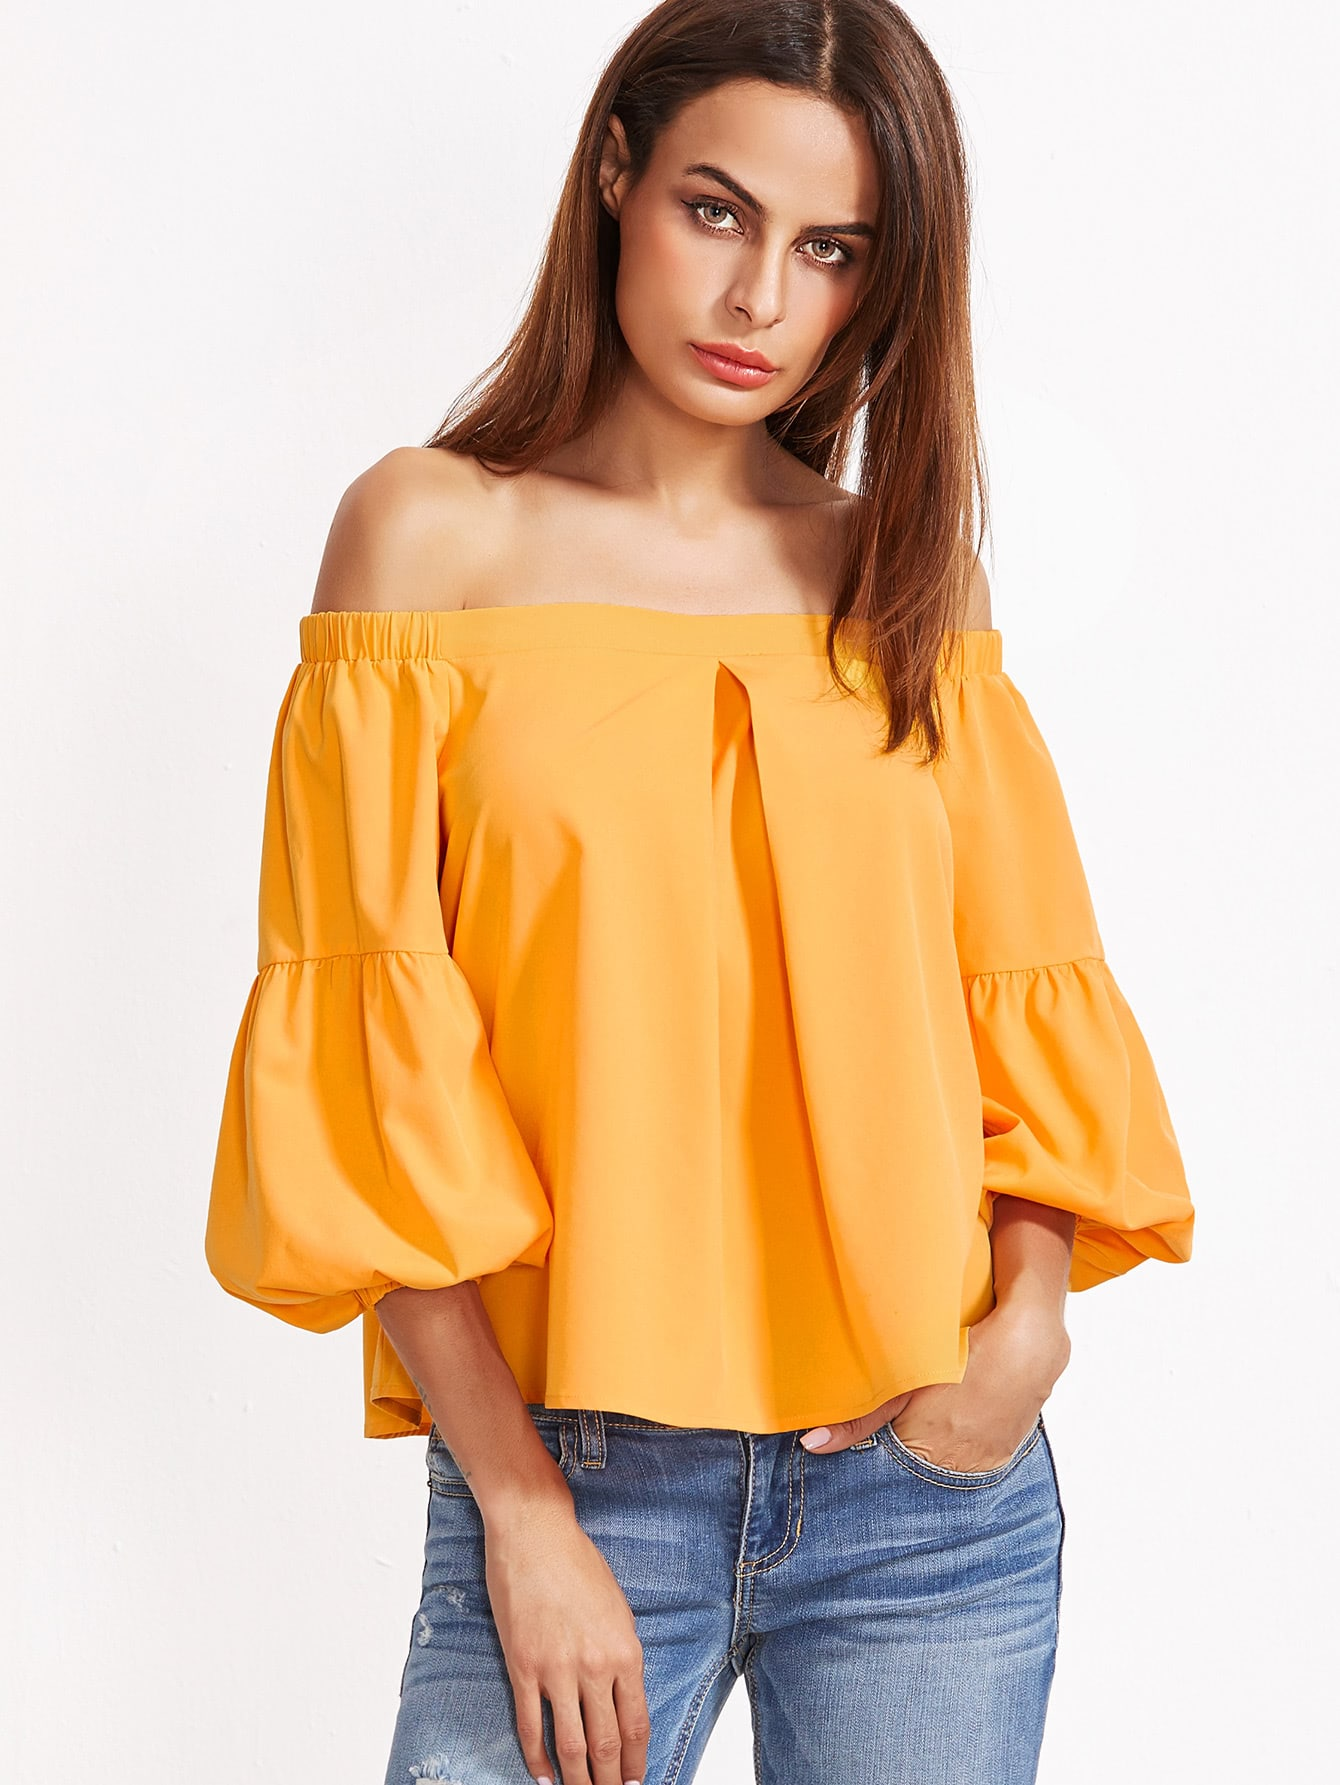 Yellow Pleated Front And Back Lantern Sleeve Off The Shoulder Top blouse161209702